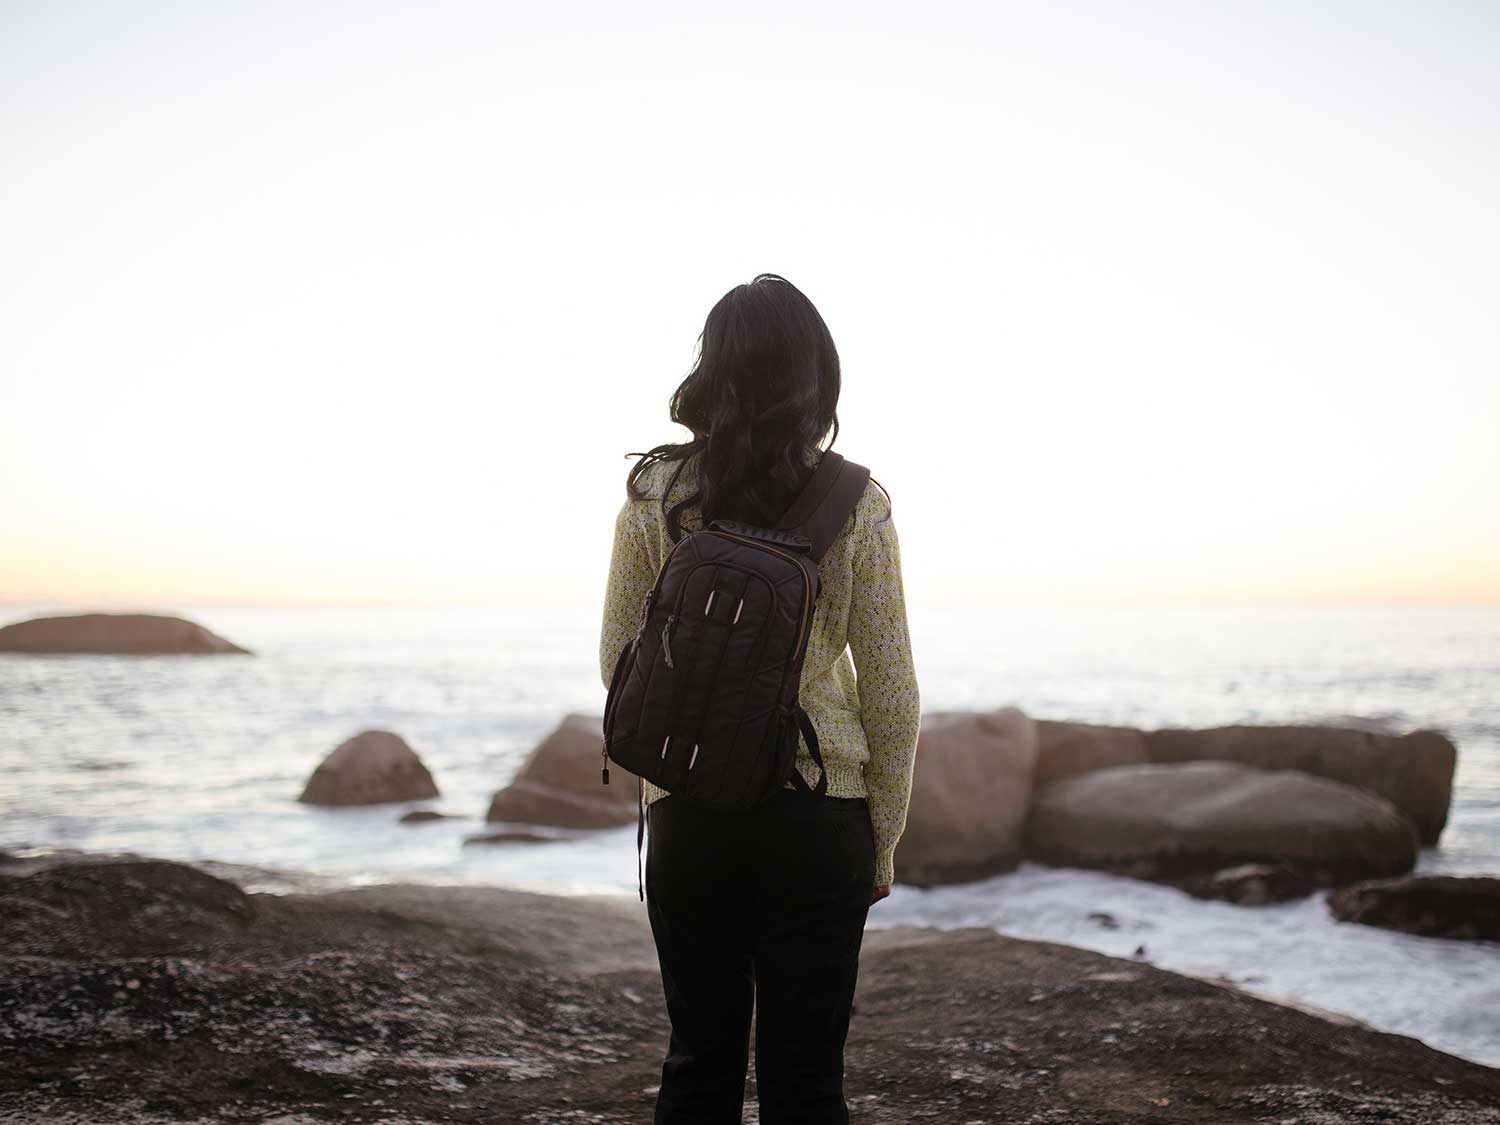 Woman carrying cooler backpack on beach.